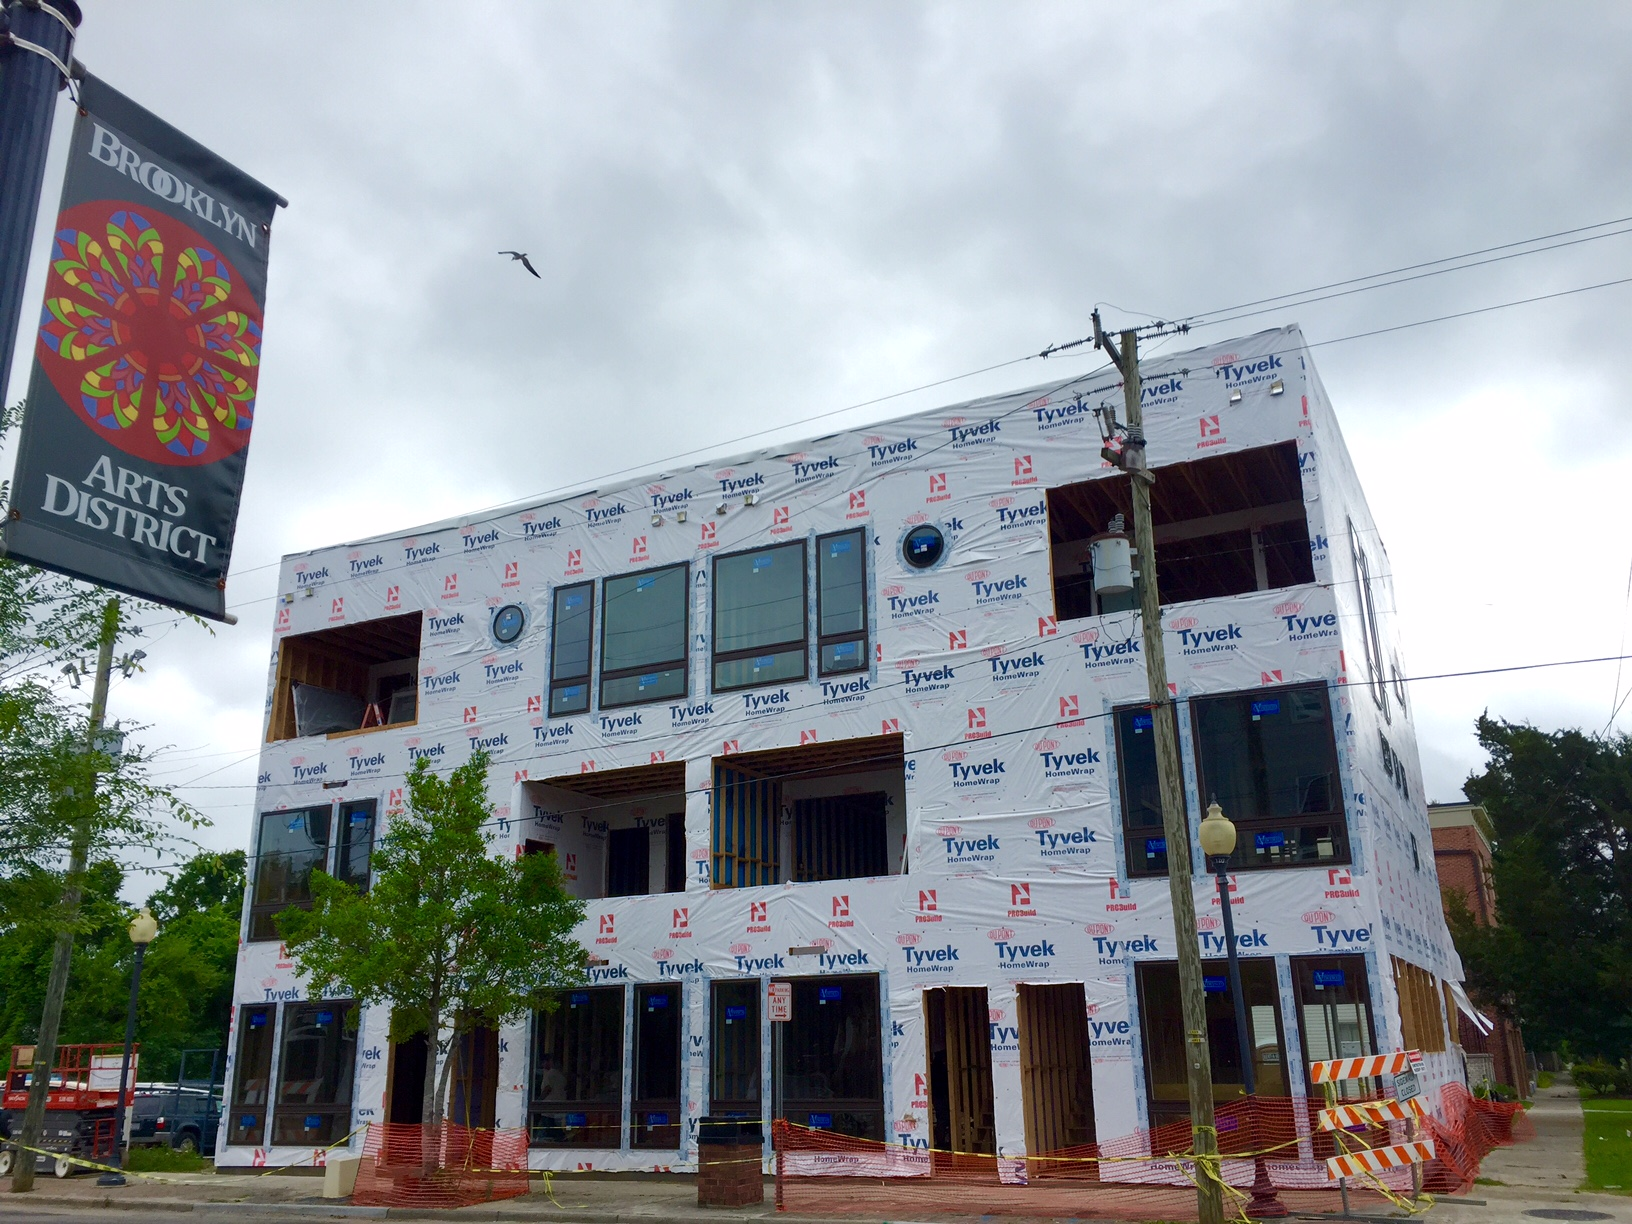 ROGUE Townhomes in progress